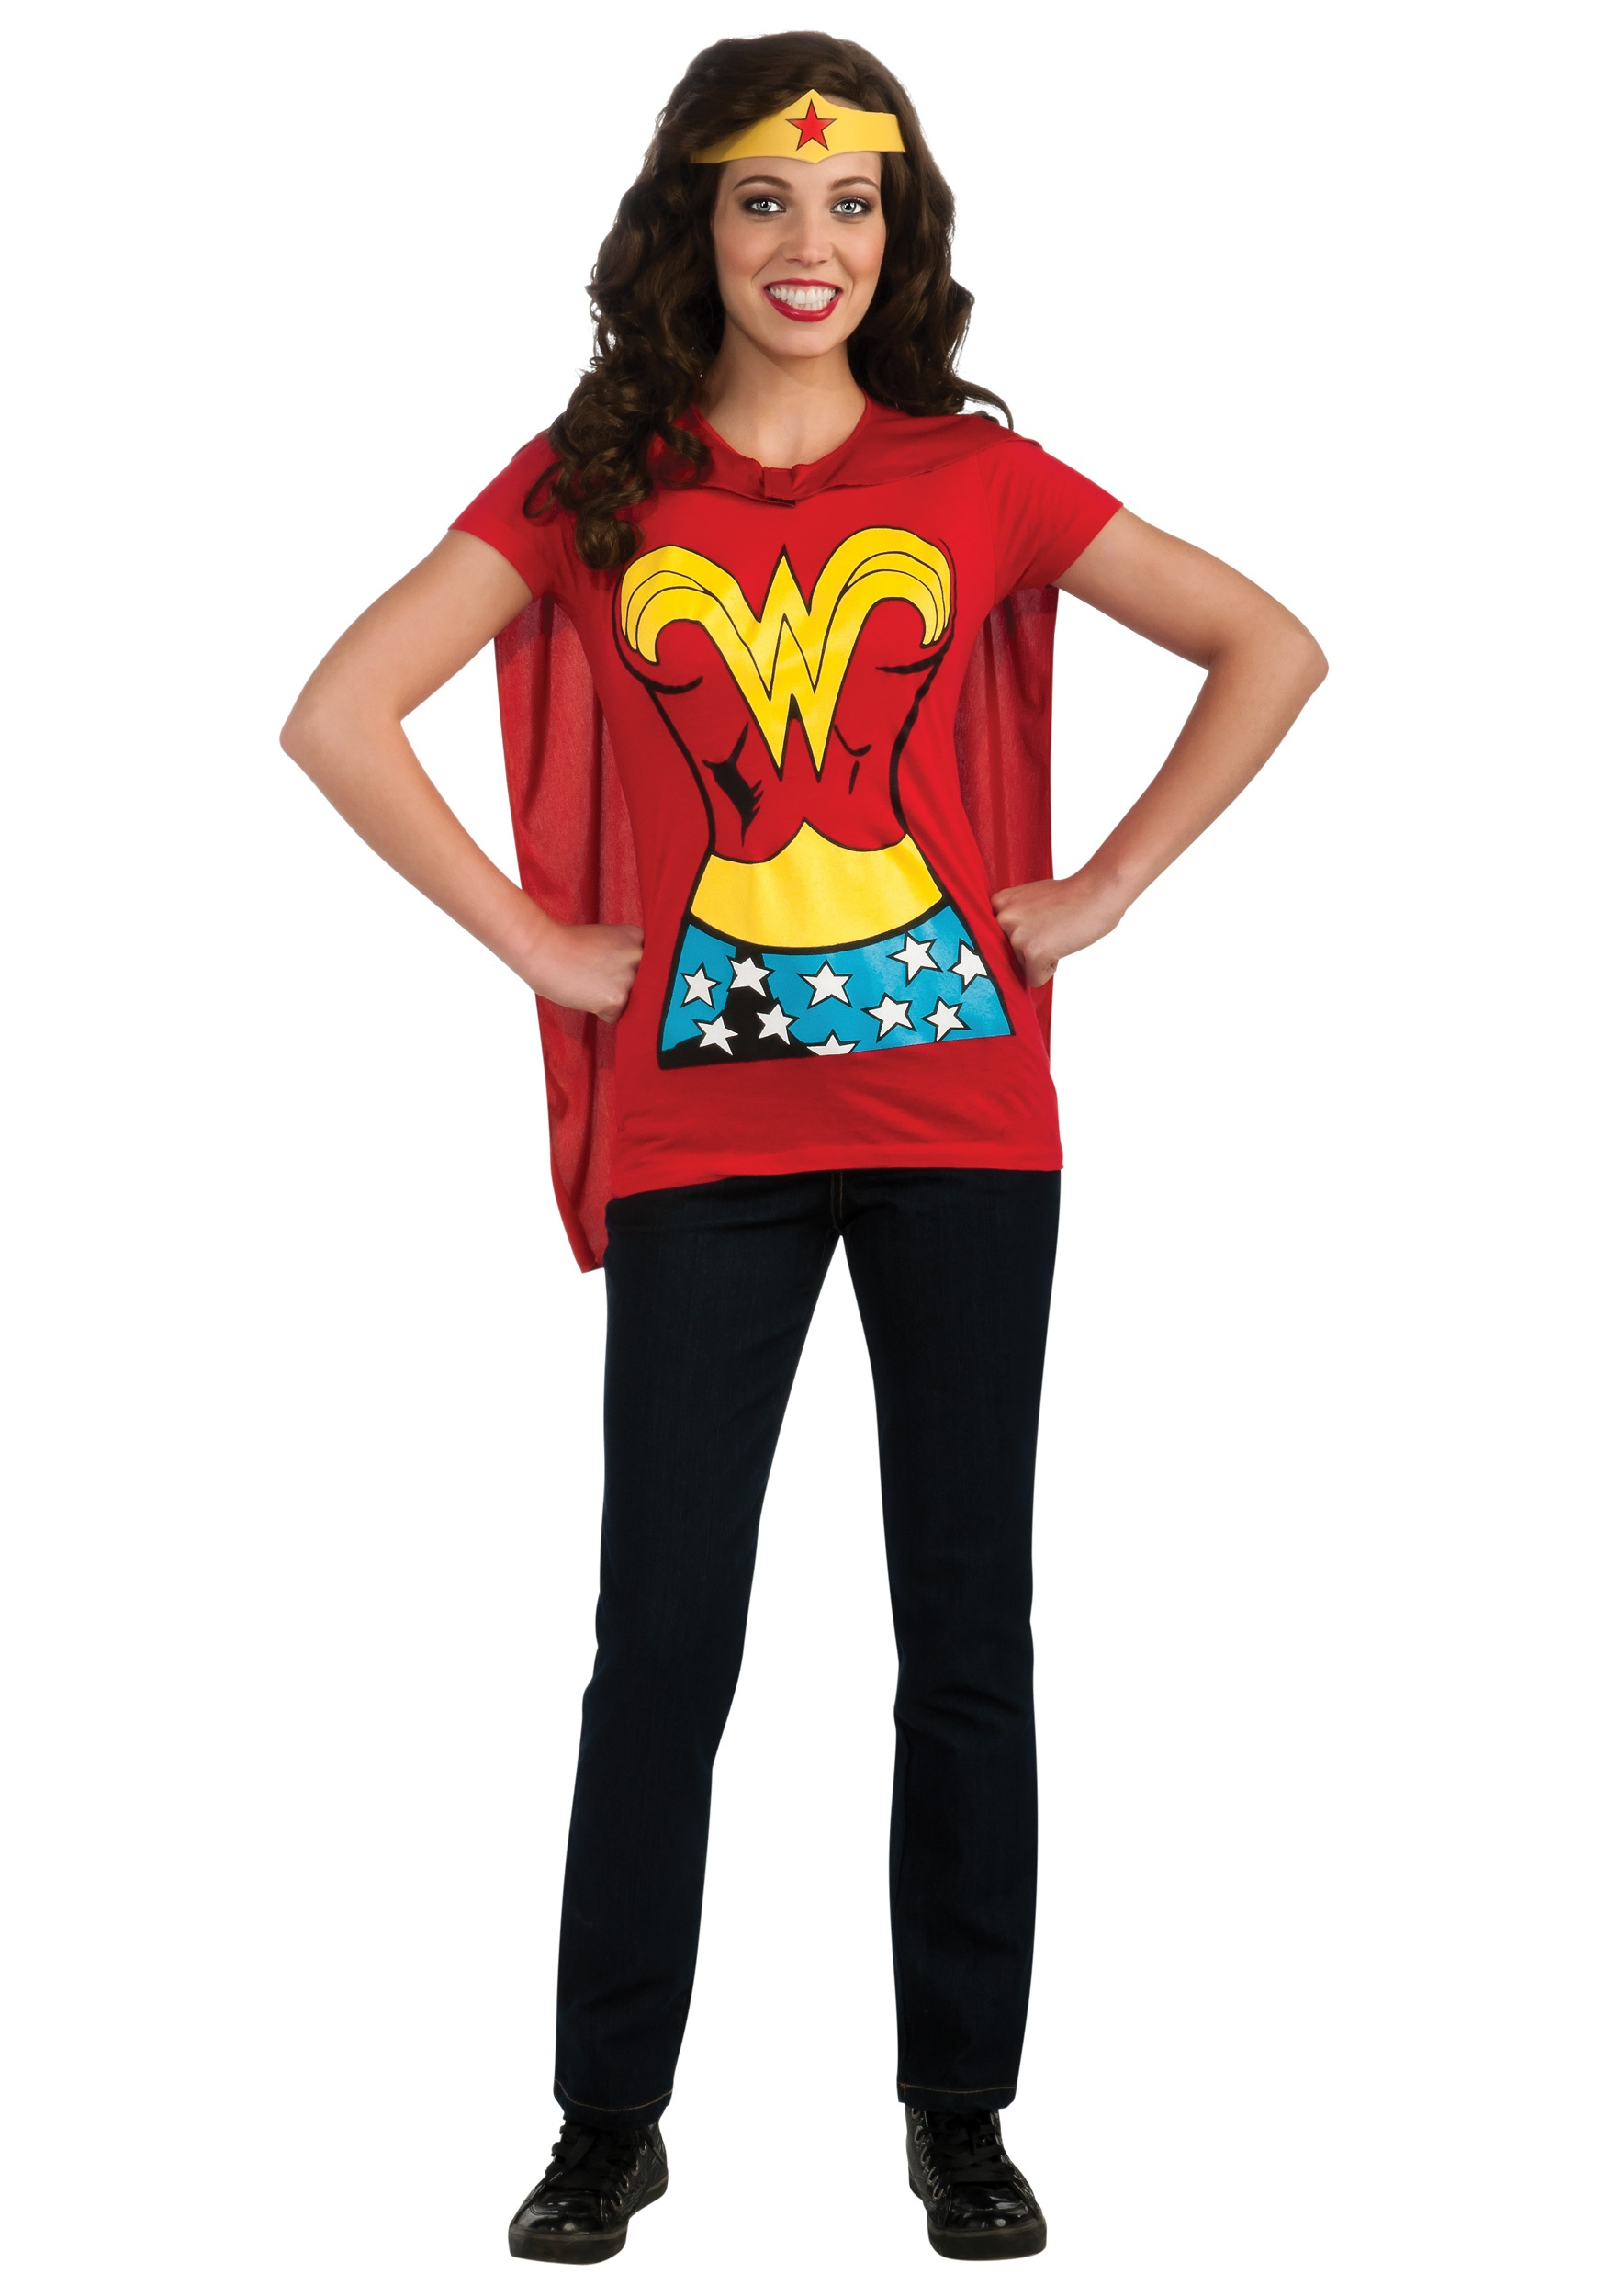 119a112bb78 Maternity Superhero Costumes   Wonder Woman And Her In-utero ...